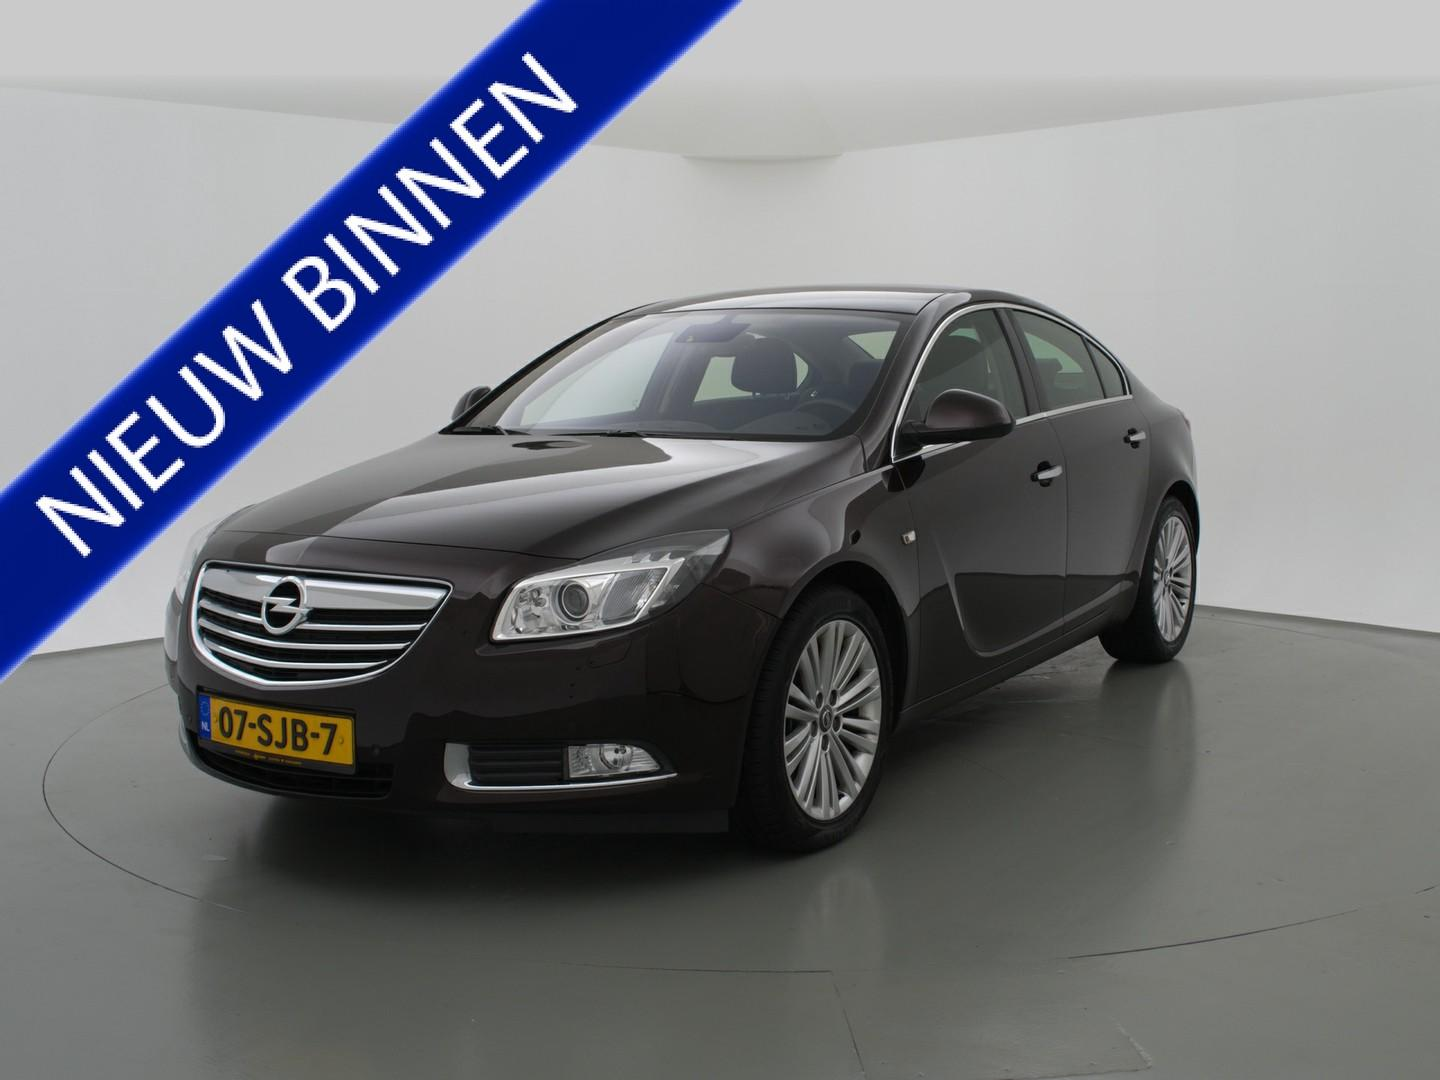 Opel Insignia 1.6 turbo 180 pk cosmo sedan *66.455 km*